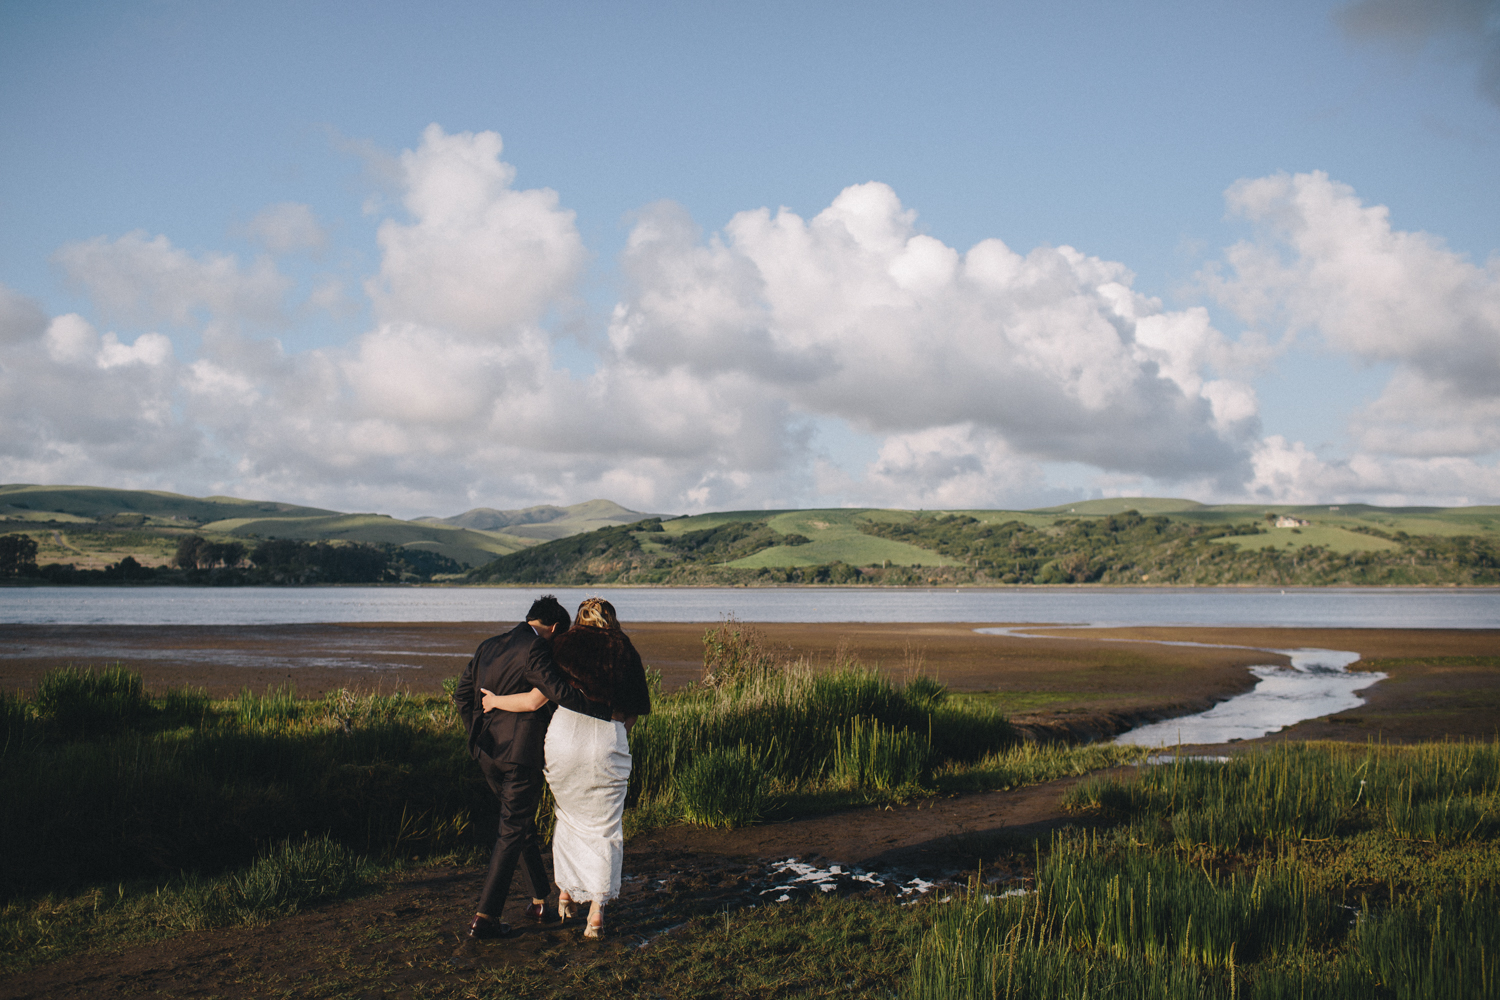 Point Reyes Inverness Wedding Photographer Rachelle Derouin-64.jpg